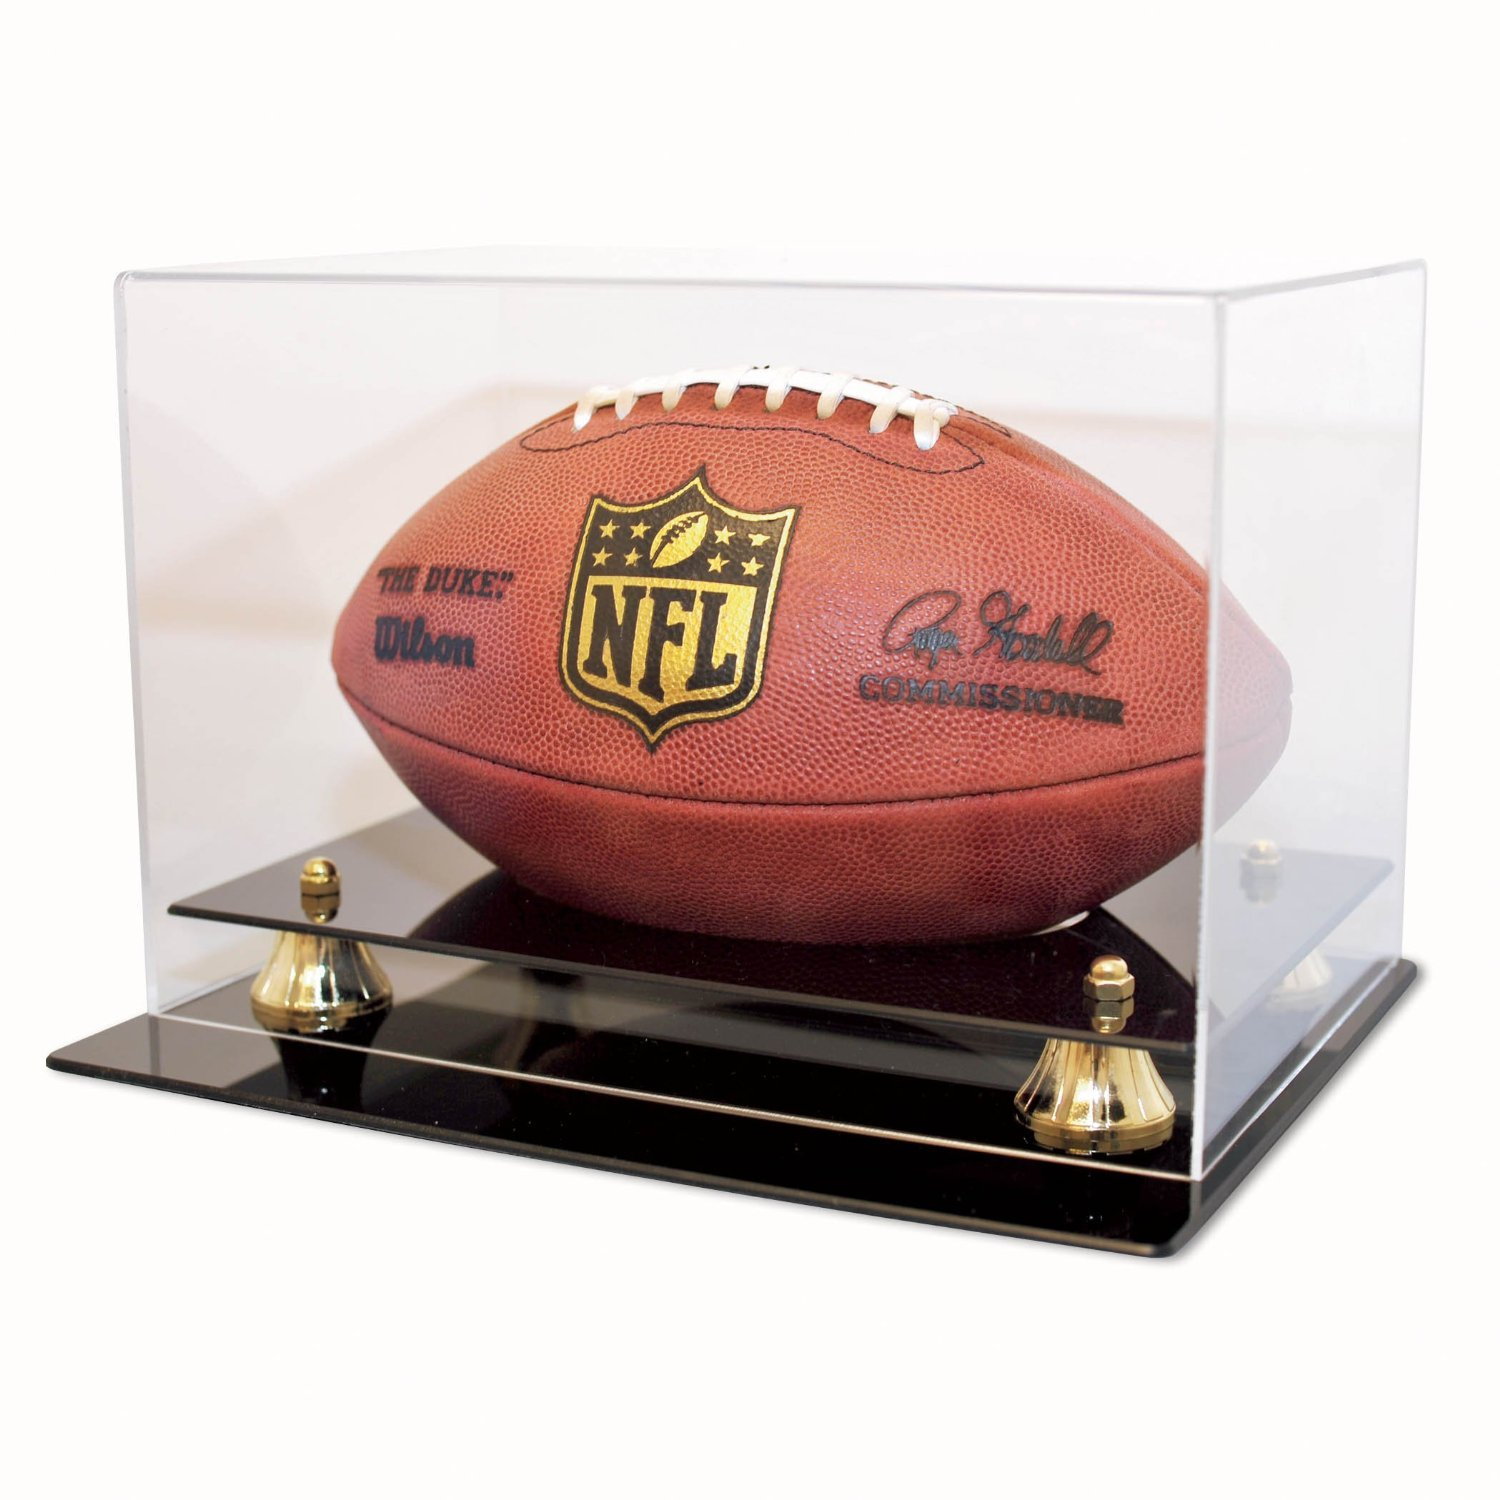 Football Display Case Holder 98% UV Protection Acrylic cover ALL 4 sides visible